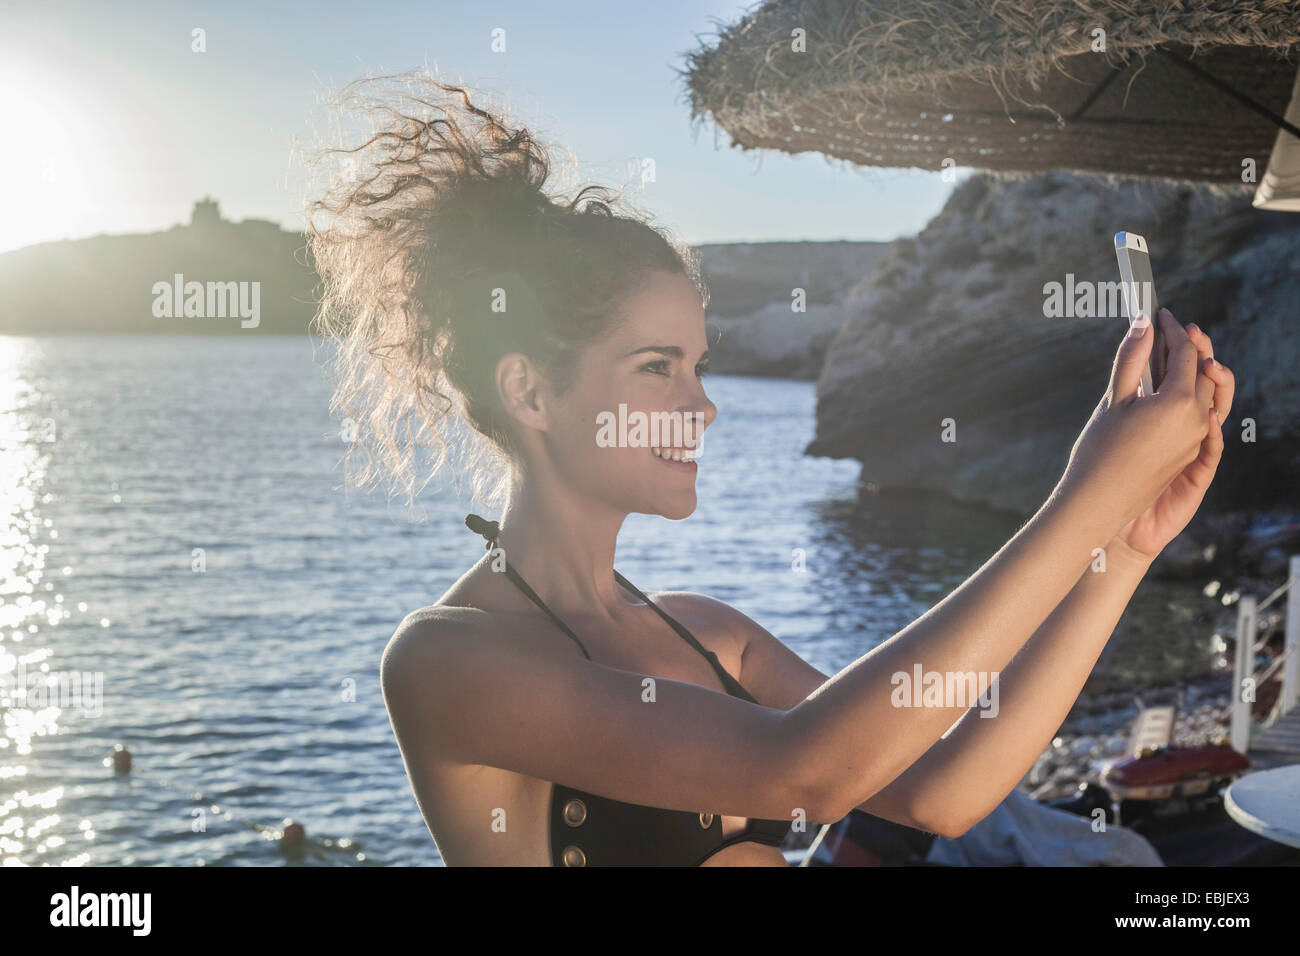 Young woman taking selfie - Stock Image